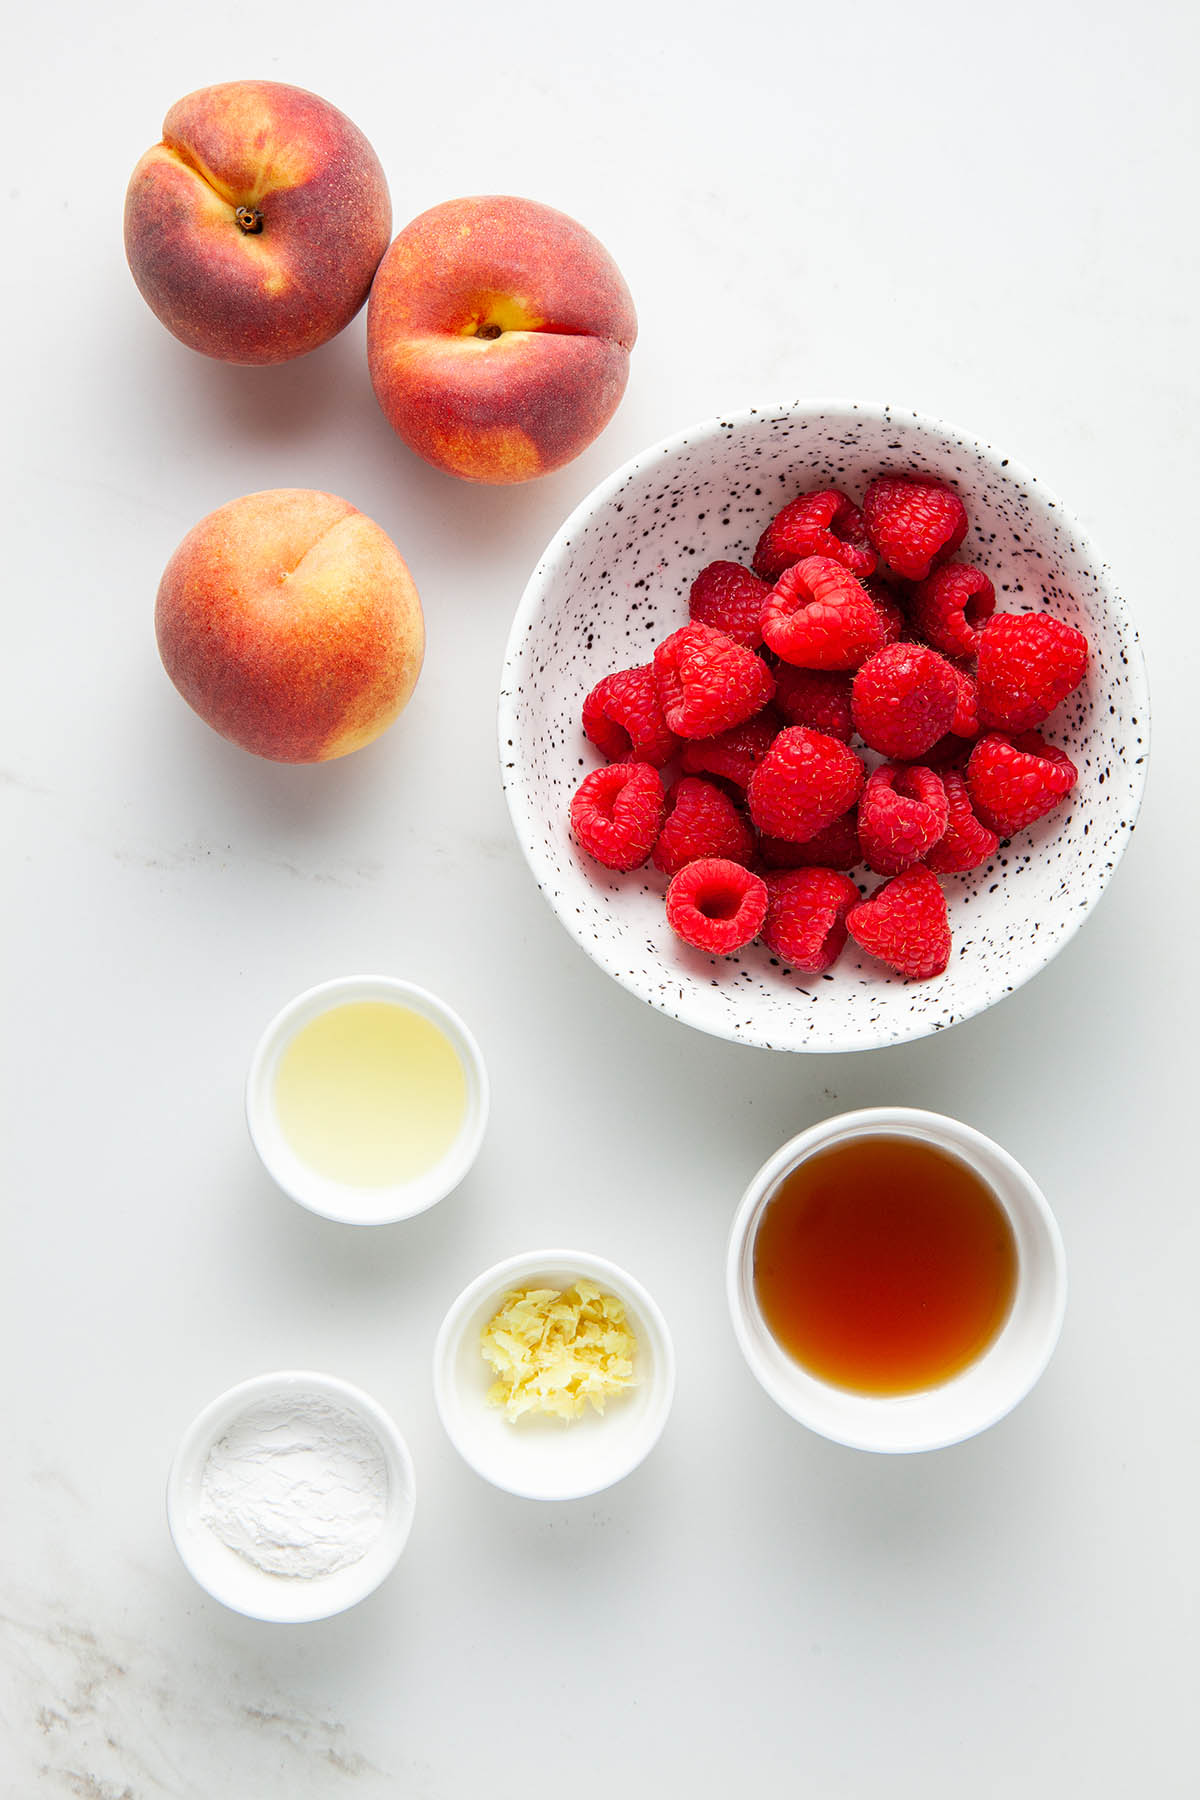 Raspberry peach filling ingredients.